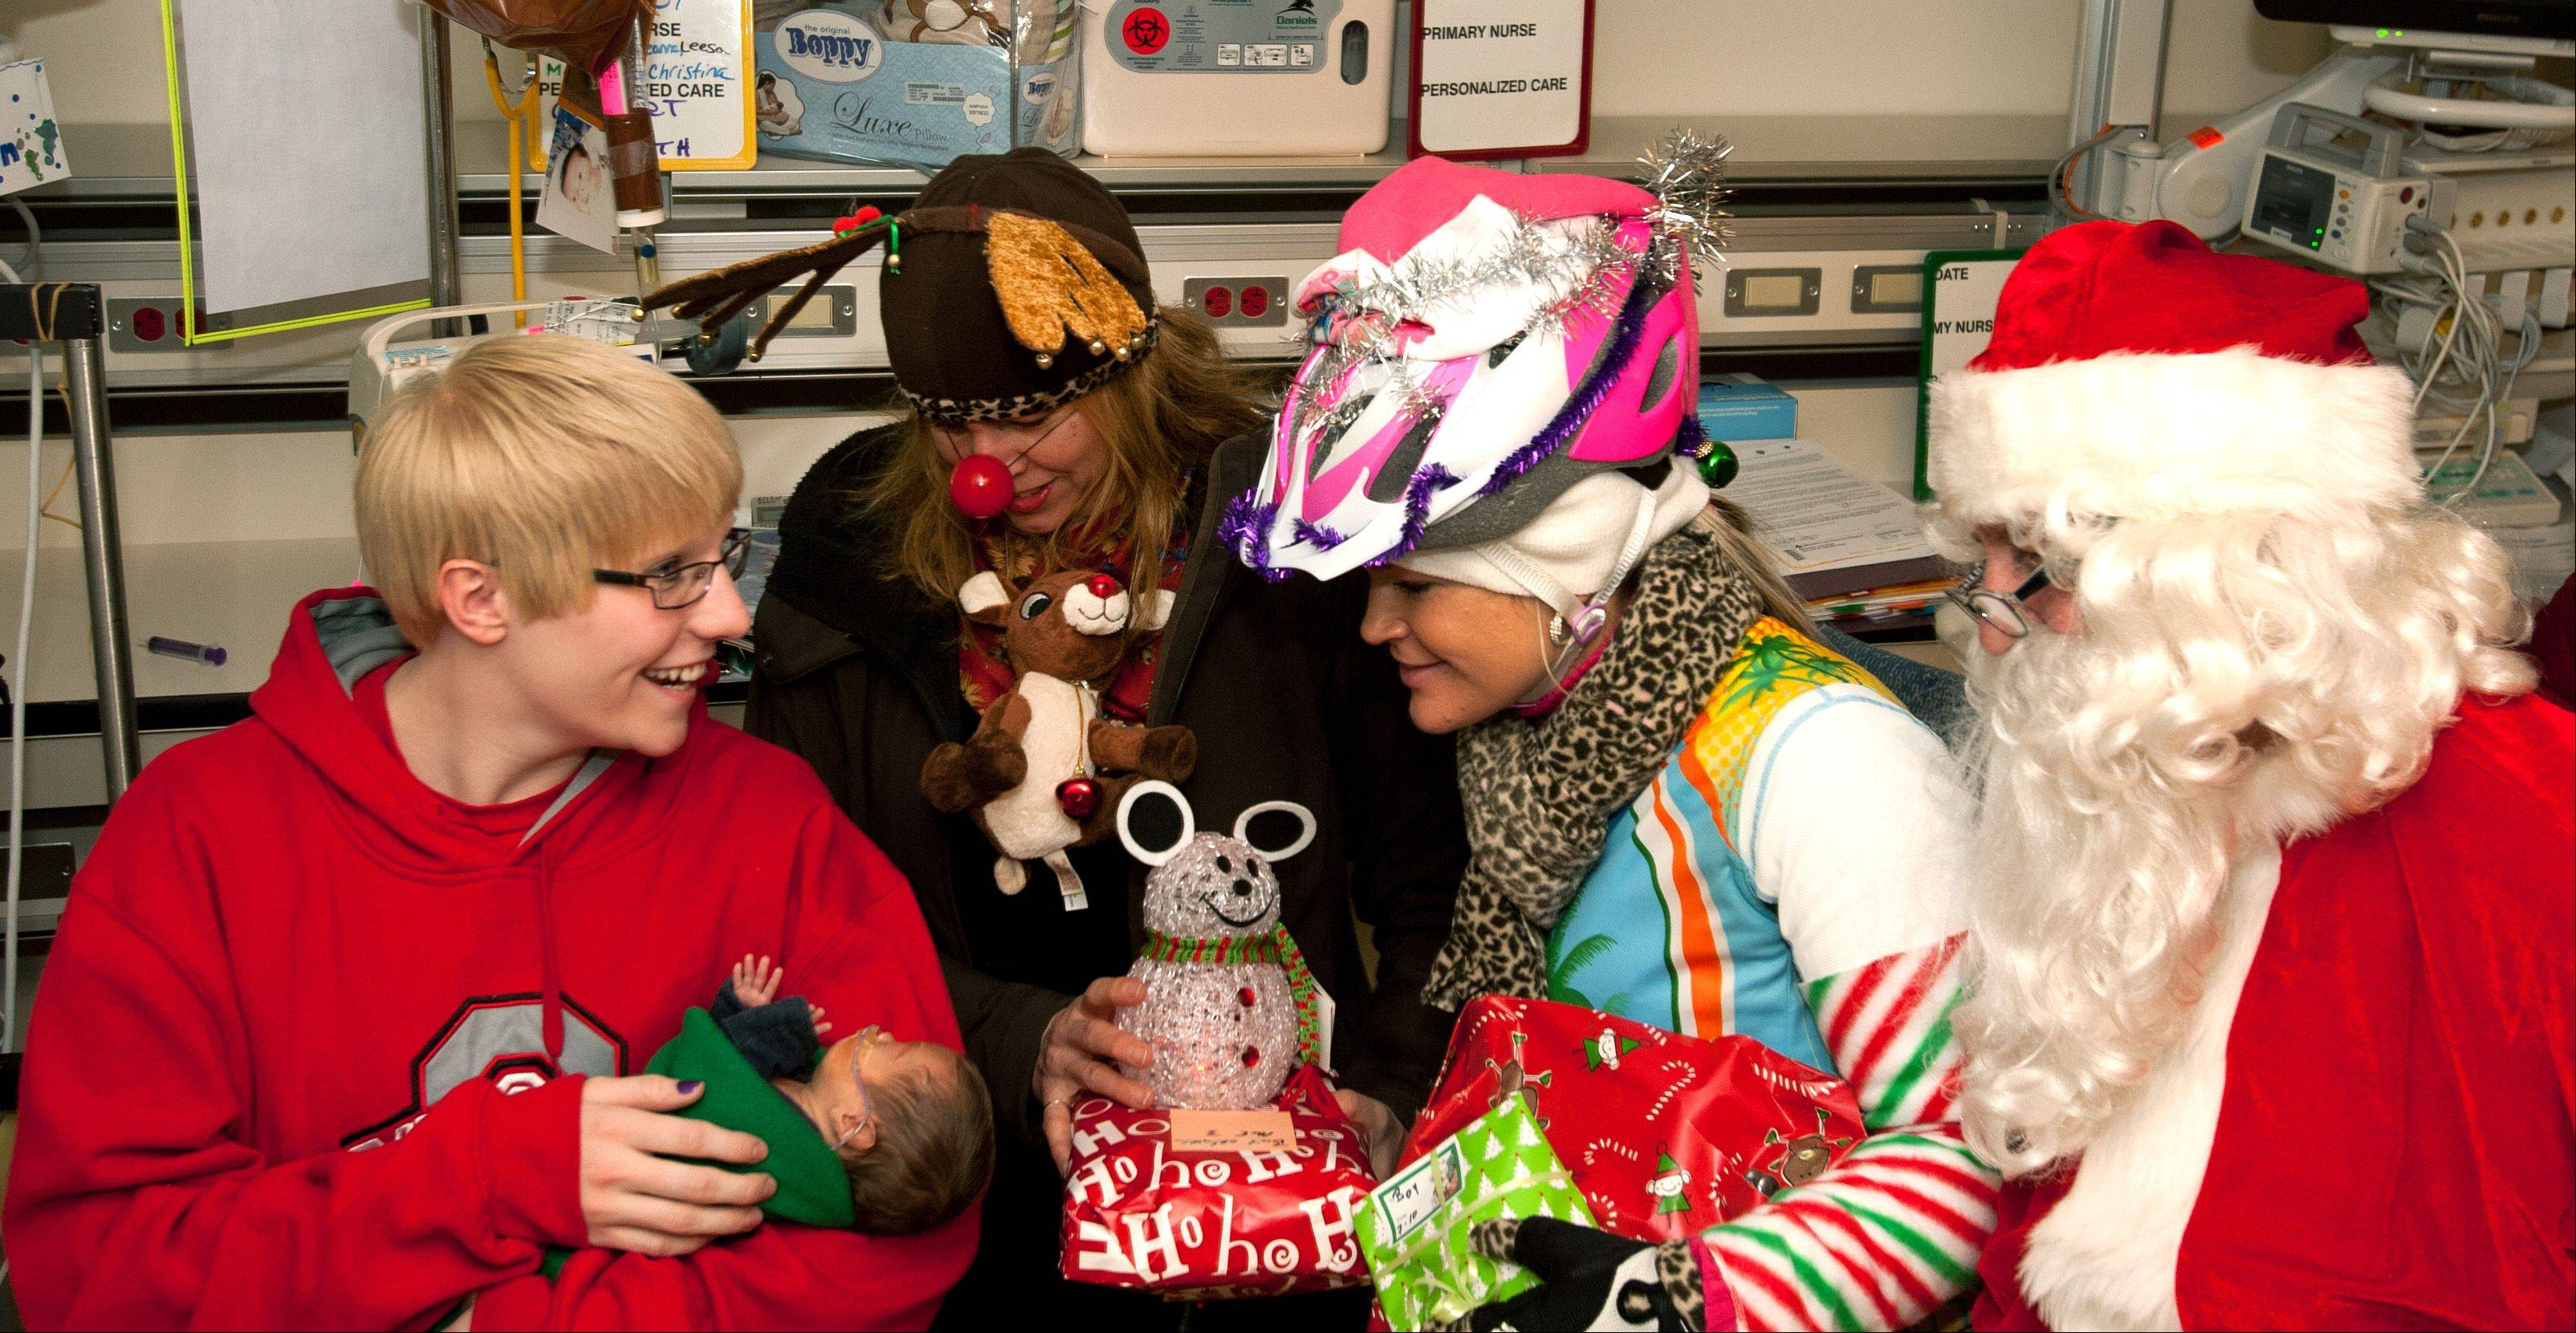 Bridget Vazquez of Naperville and her son Logan, who was born prematurely and remains in neonatal intensive care at Advocate Good Samaritan Hospital in Downers Grove, receive a visit from Pedalheads cycling club members Vicky Tate, Vita Zadura and Todd Crisman on Saturday as the bicyclists delivered gifts to hospitalized children.